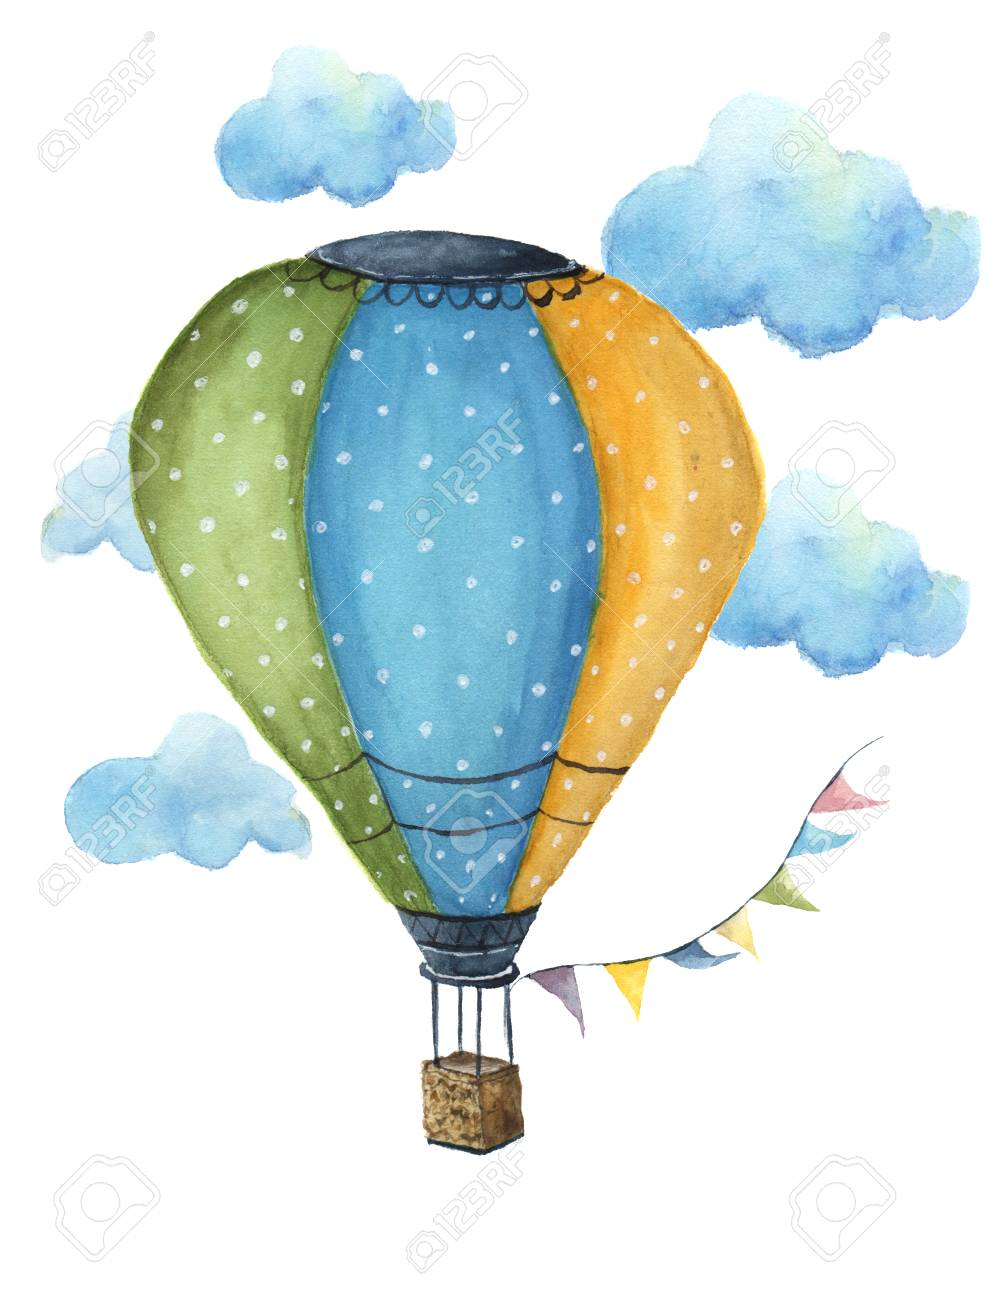 Watercolor hot air balloon set. Hand drawn vintage air balloons with flags garlands, clouds, polka dot pattern and retro design. Illustrations isolated on white background. For design, print and background - 65145305